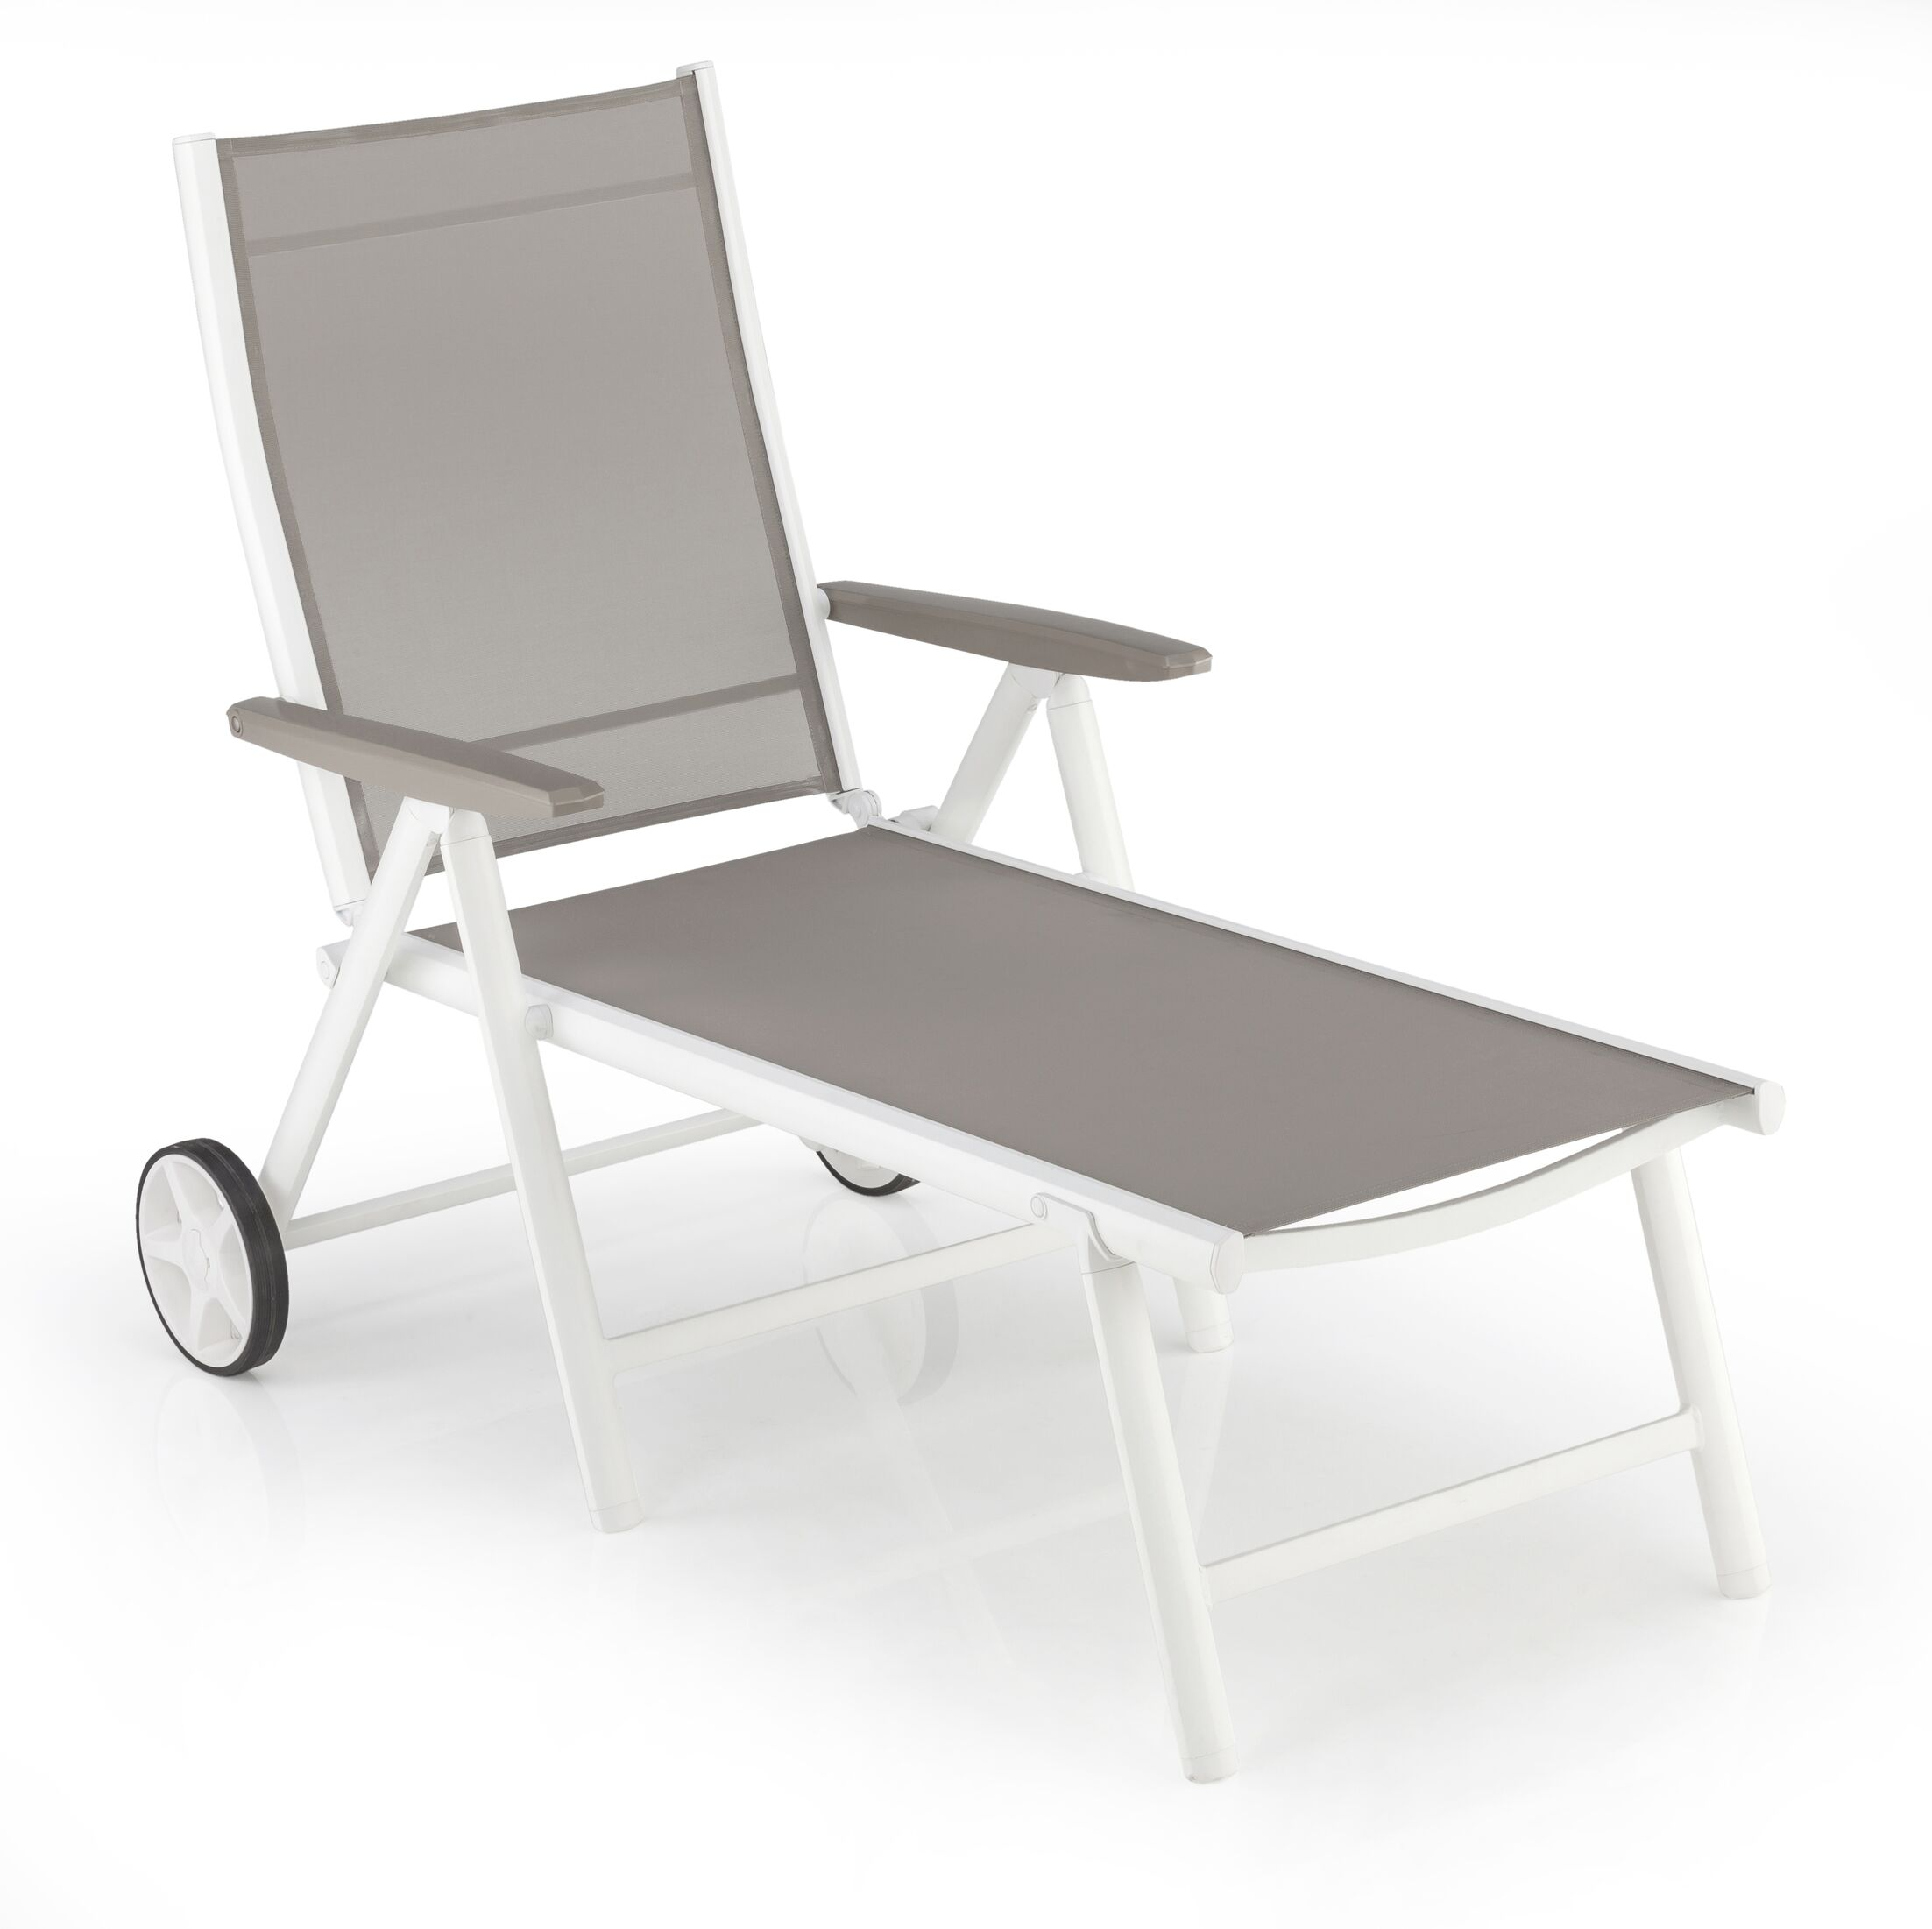 Cotner Reclining Chaise Lounge with Wheels